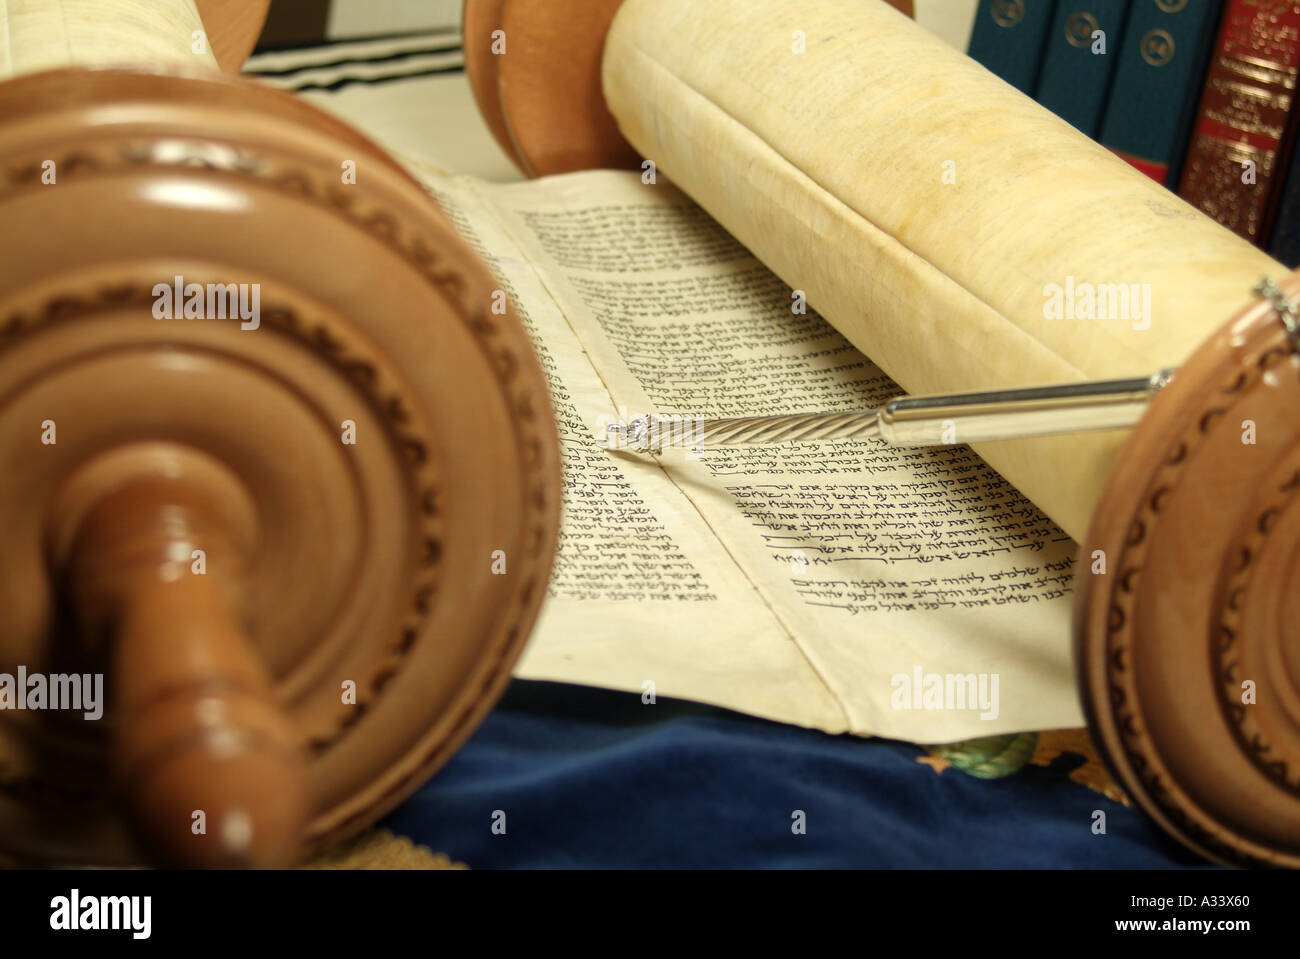 Open Torah scroll with silver yad pointing to Hebrew word. Holy Jewish books in background - Stock Image